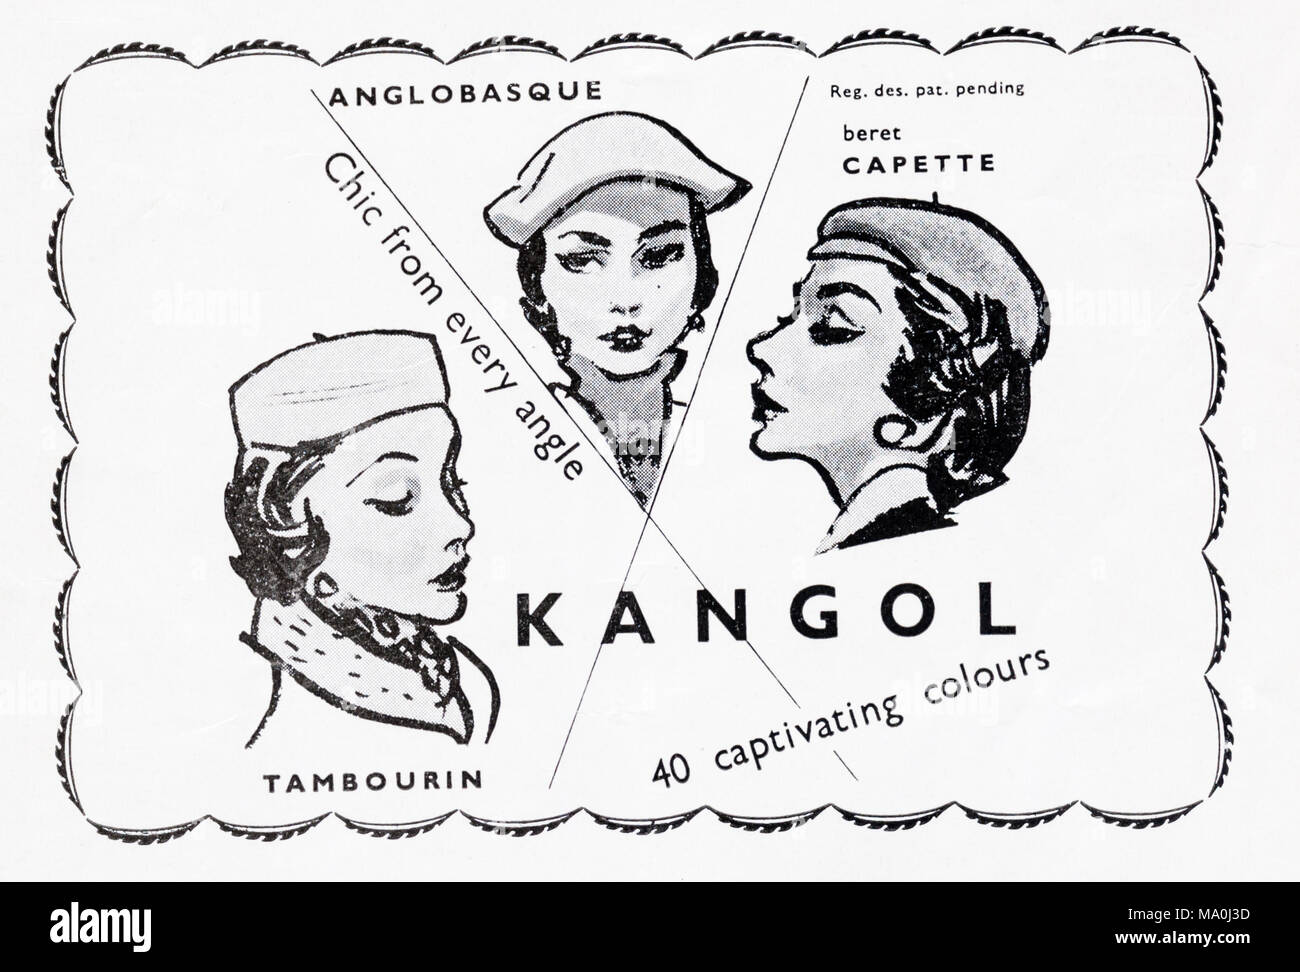 1950s magazine advertisement advertising Kangol hats for women. - Stock Image